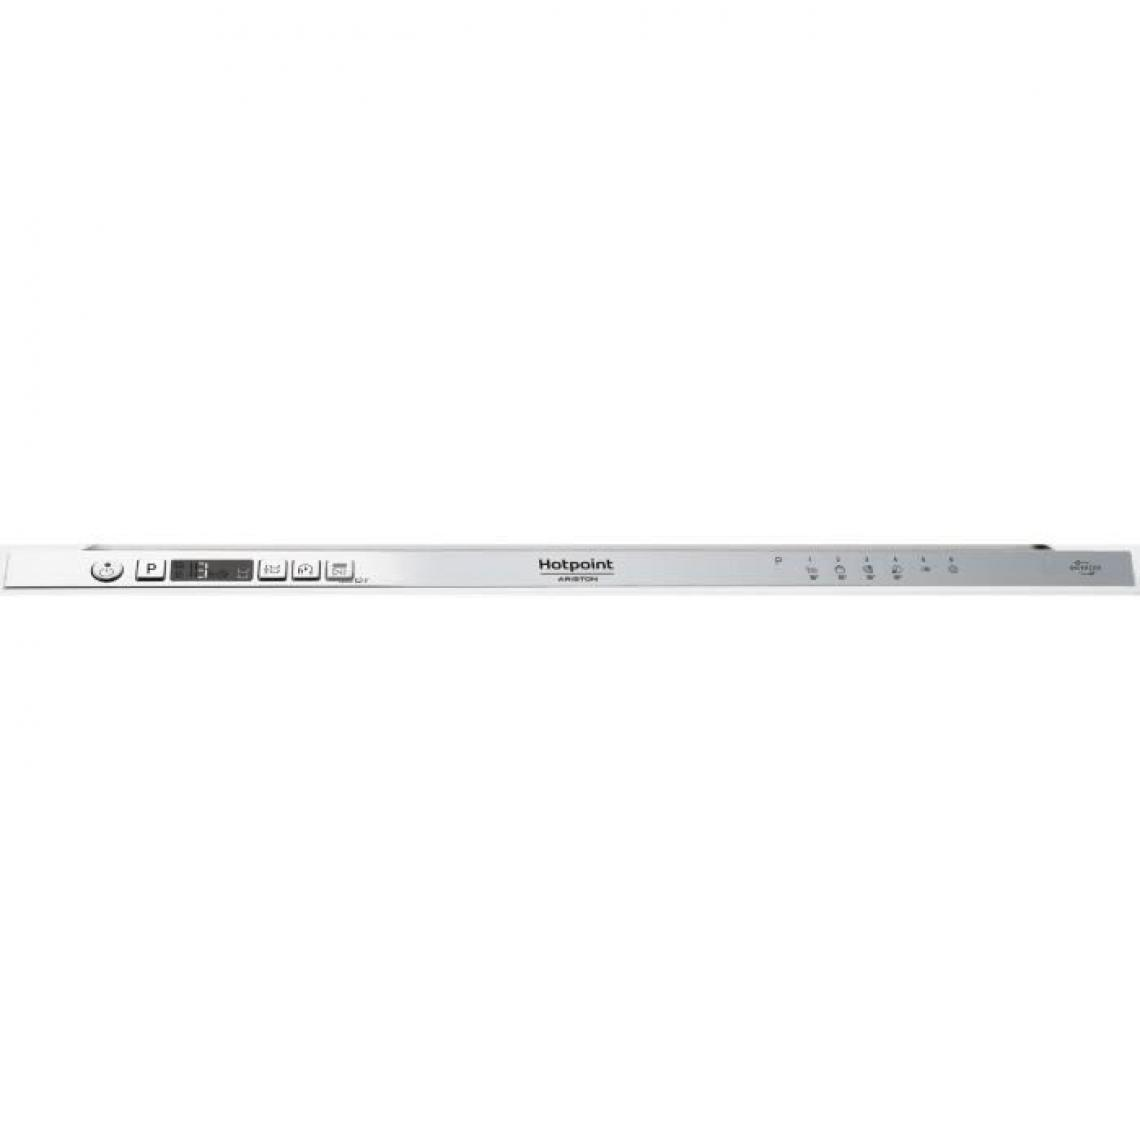 Hotpoint Lave-vaisselle pose libre HOTPOINT, HOT8050147594414